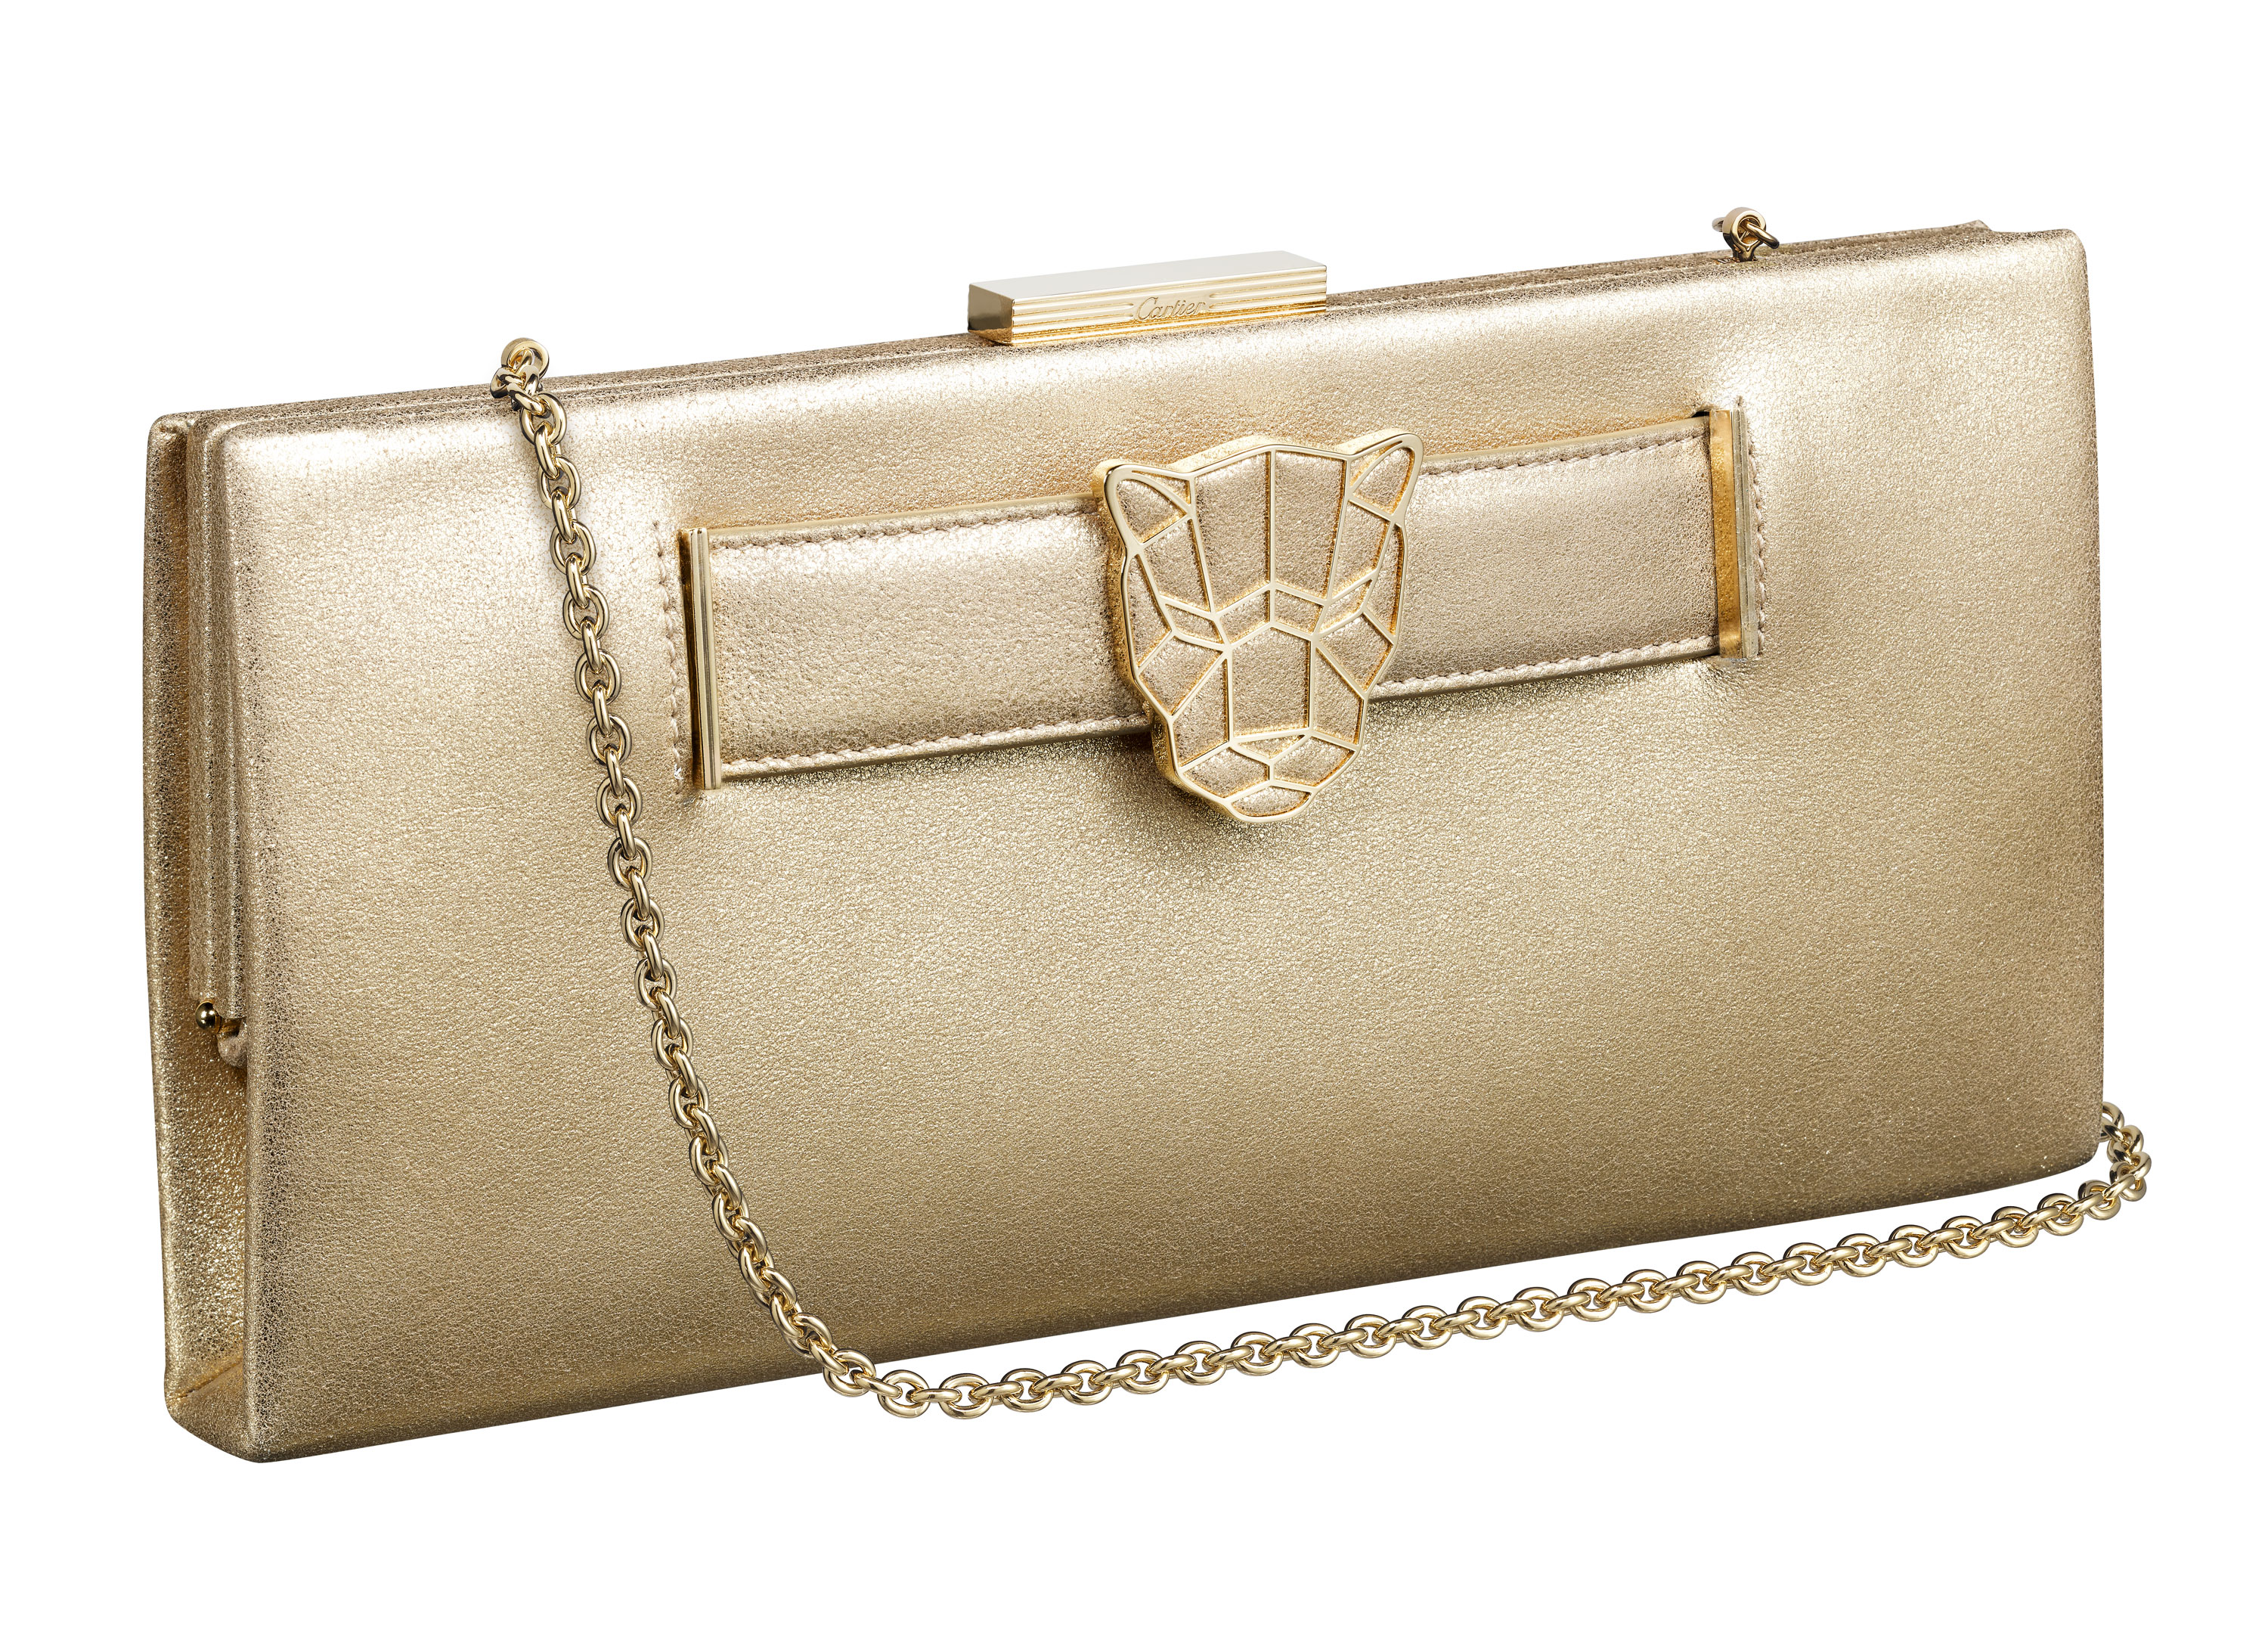 Pochette Panthere Gold chain